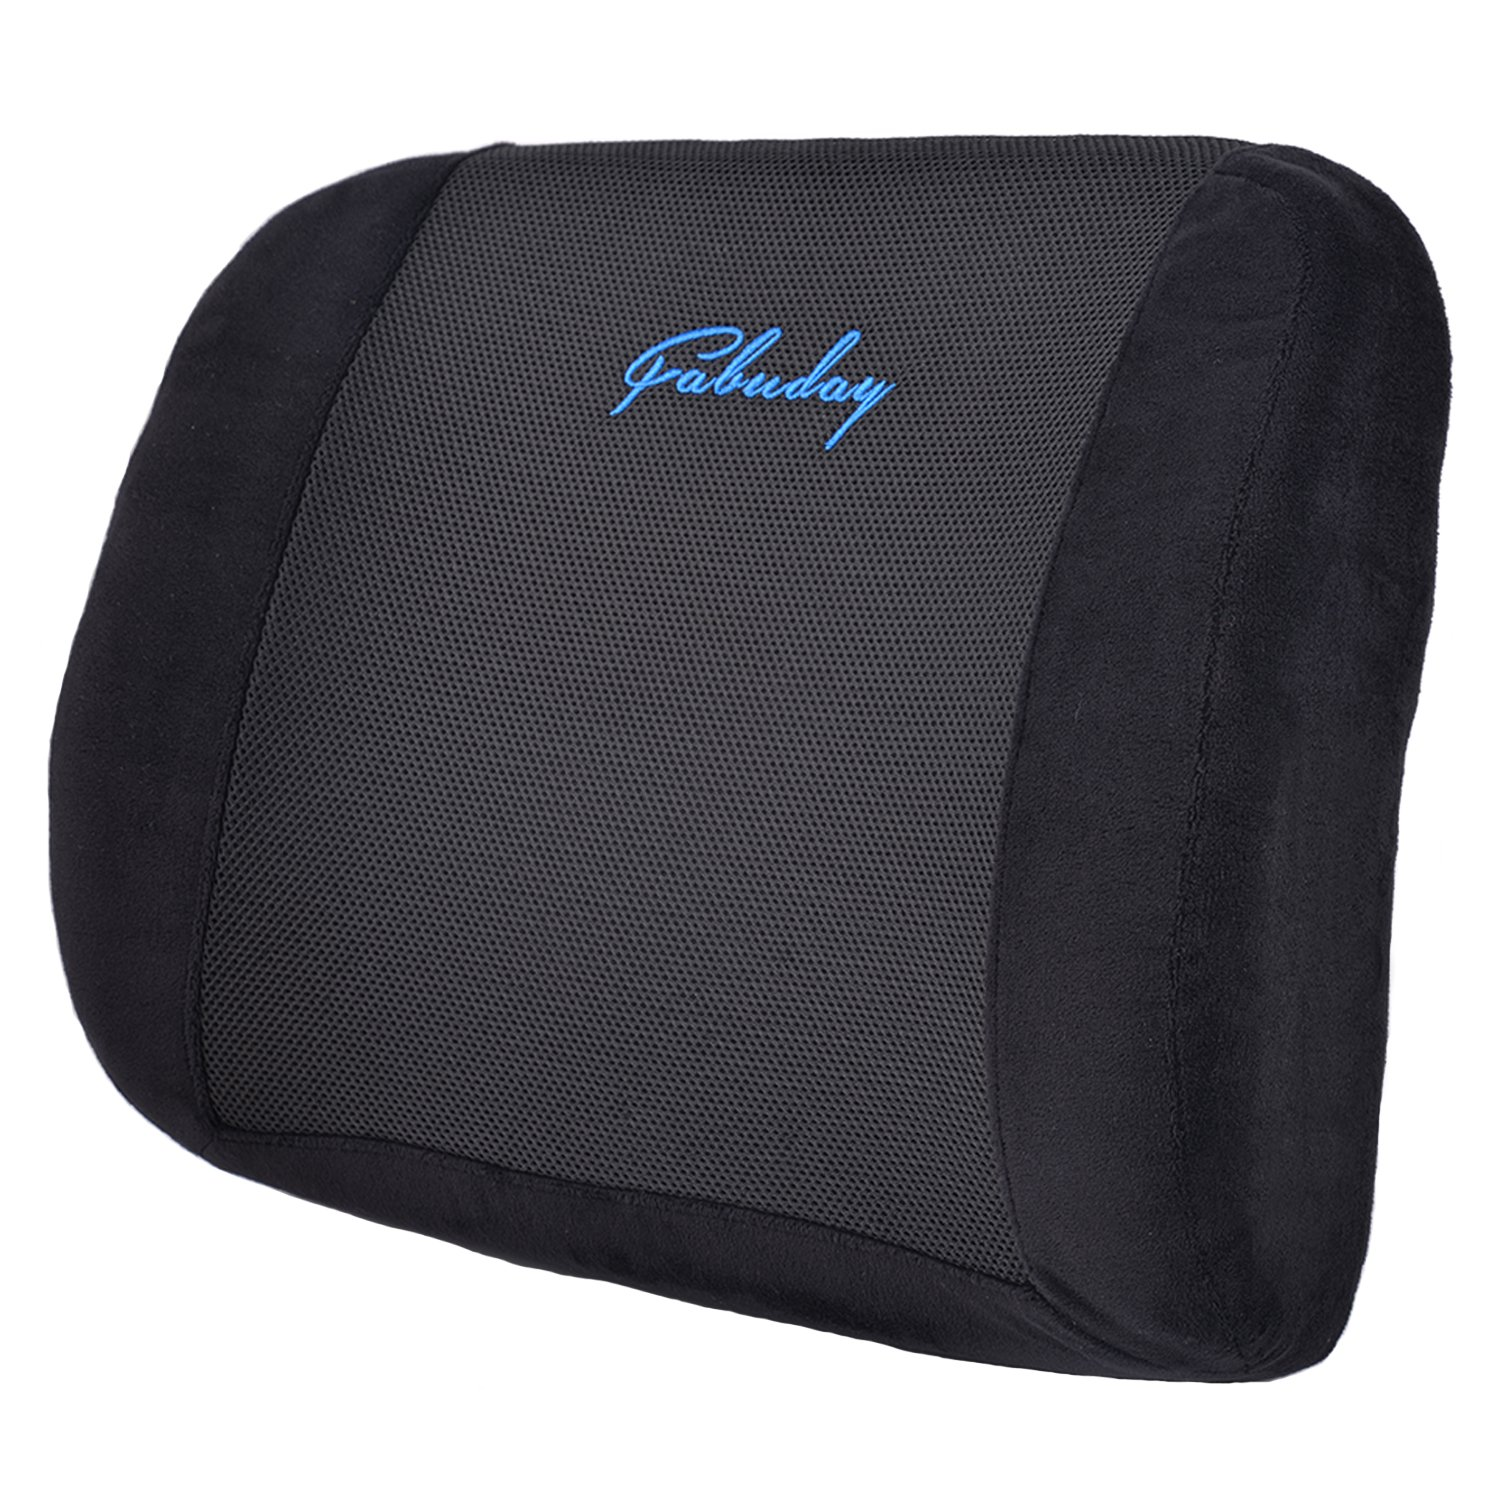 Pure Memory Foam Lumbar Support Pillow Back Cushion Ergonomic Design for Back Pain Relief and Posture Improvement with Washable 3D Mesh Cover and Adjustable Strap Fabuday